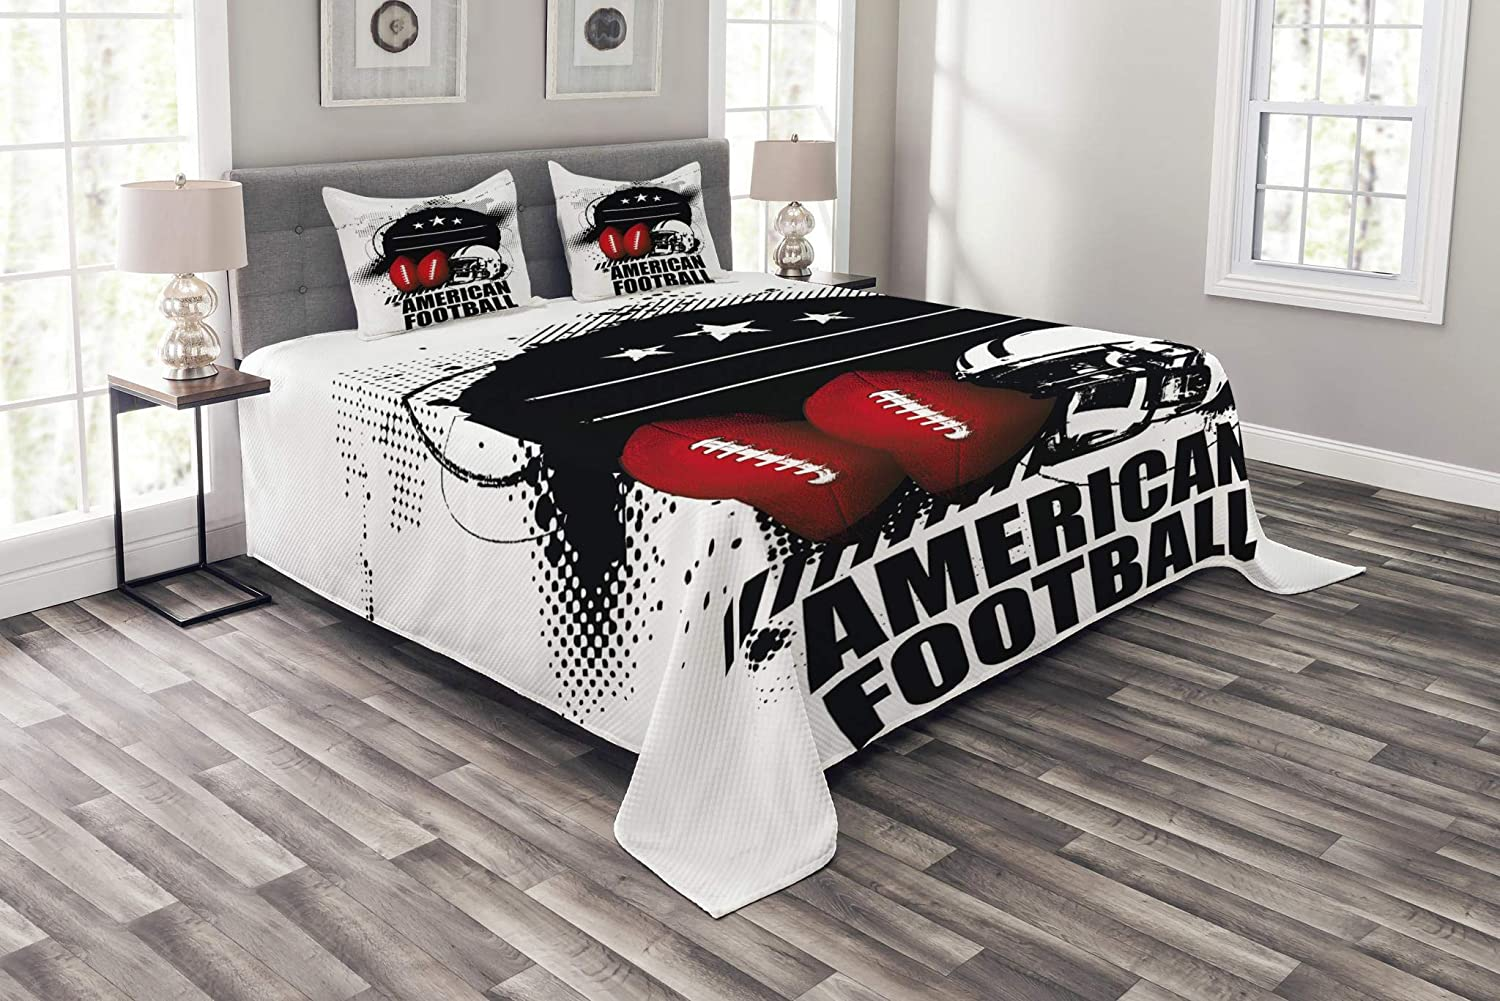 Lunarable Boy's Room Bedspread Set Twin Size, American Football Theme Grunge Looking Retro Composition Balls, Decorative Quilted 2 Piece Coverlet Set Pillow Sham, Red White Black bed_40541_twin